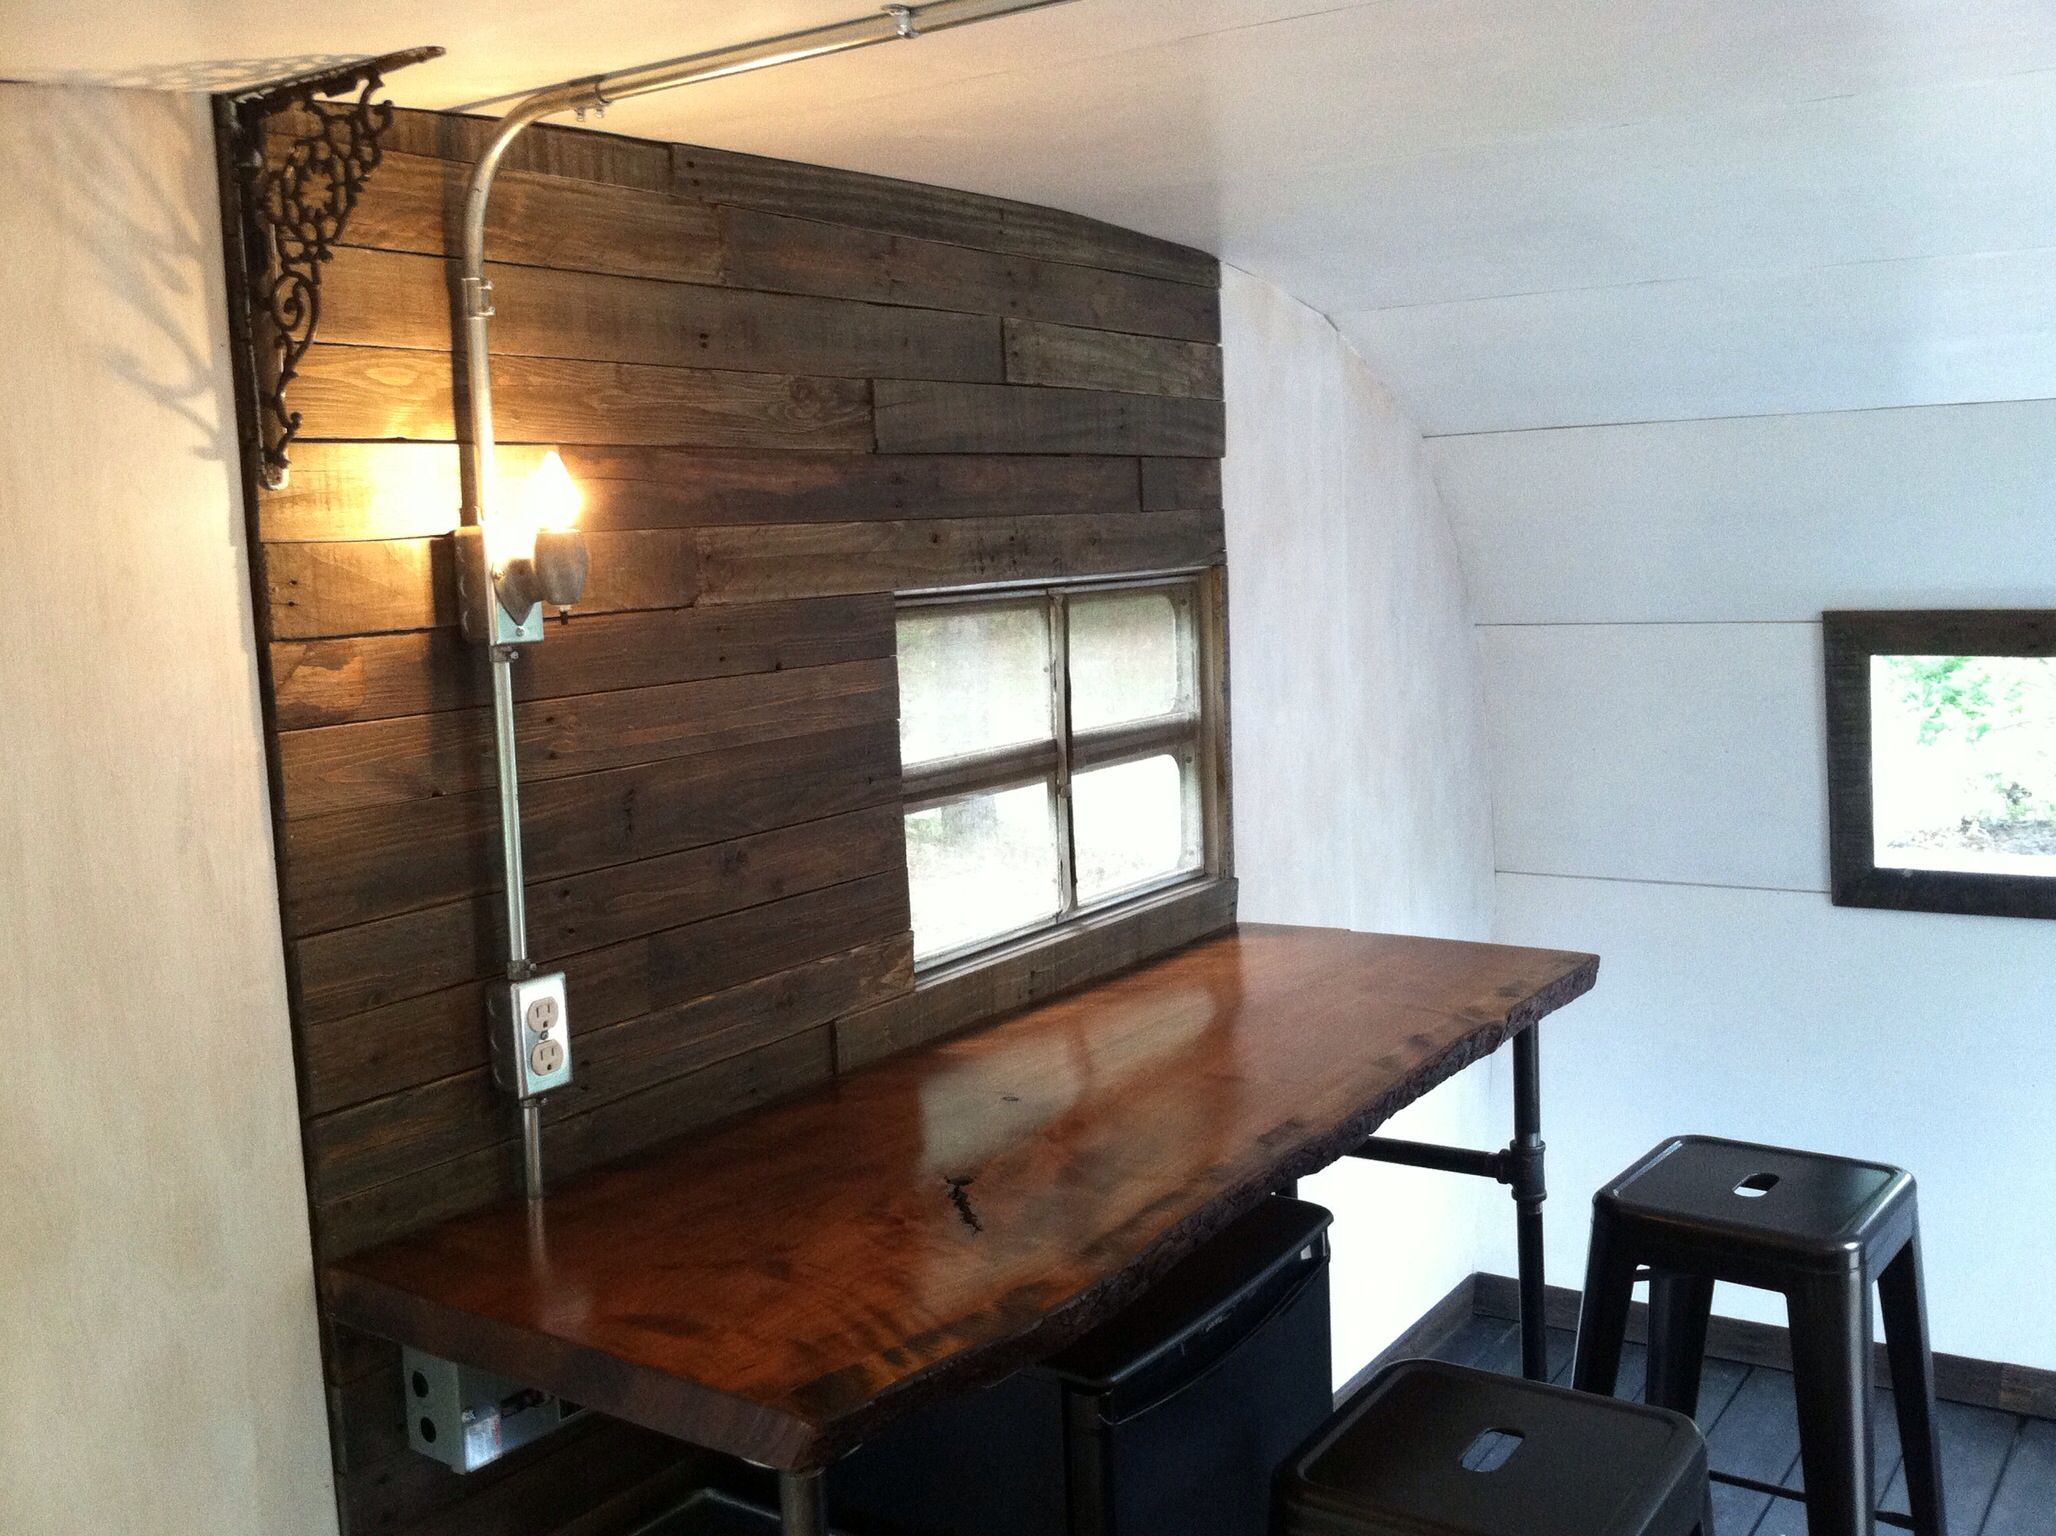 Vintage Camper Interior Renovation Pallet Wall Raw Edge Wood